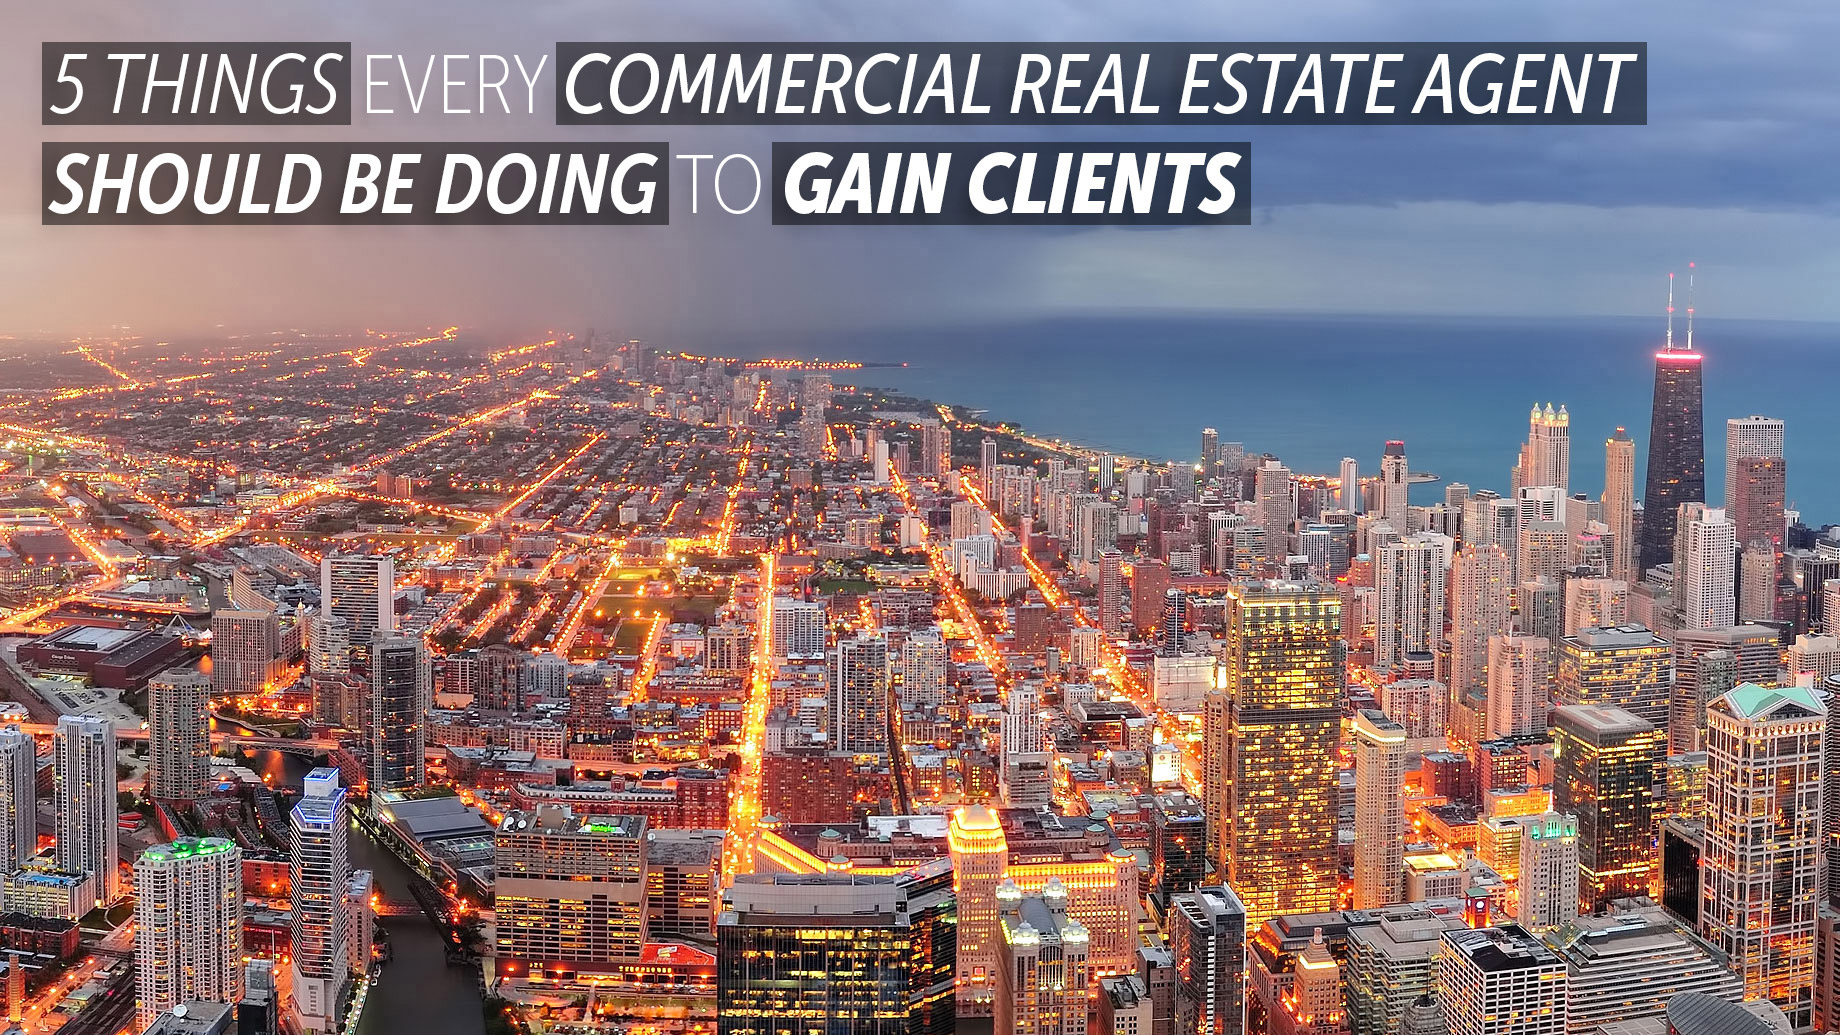 5 Things Every Commercial Real Estate Agent Should Be Doing to Gain Clients